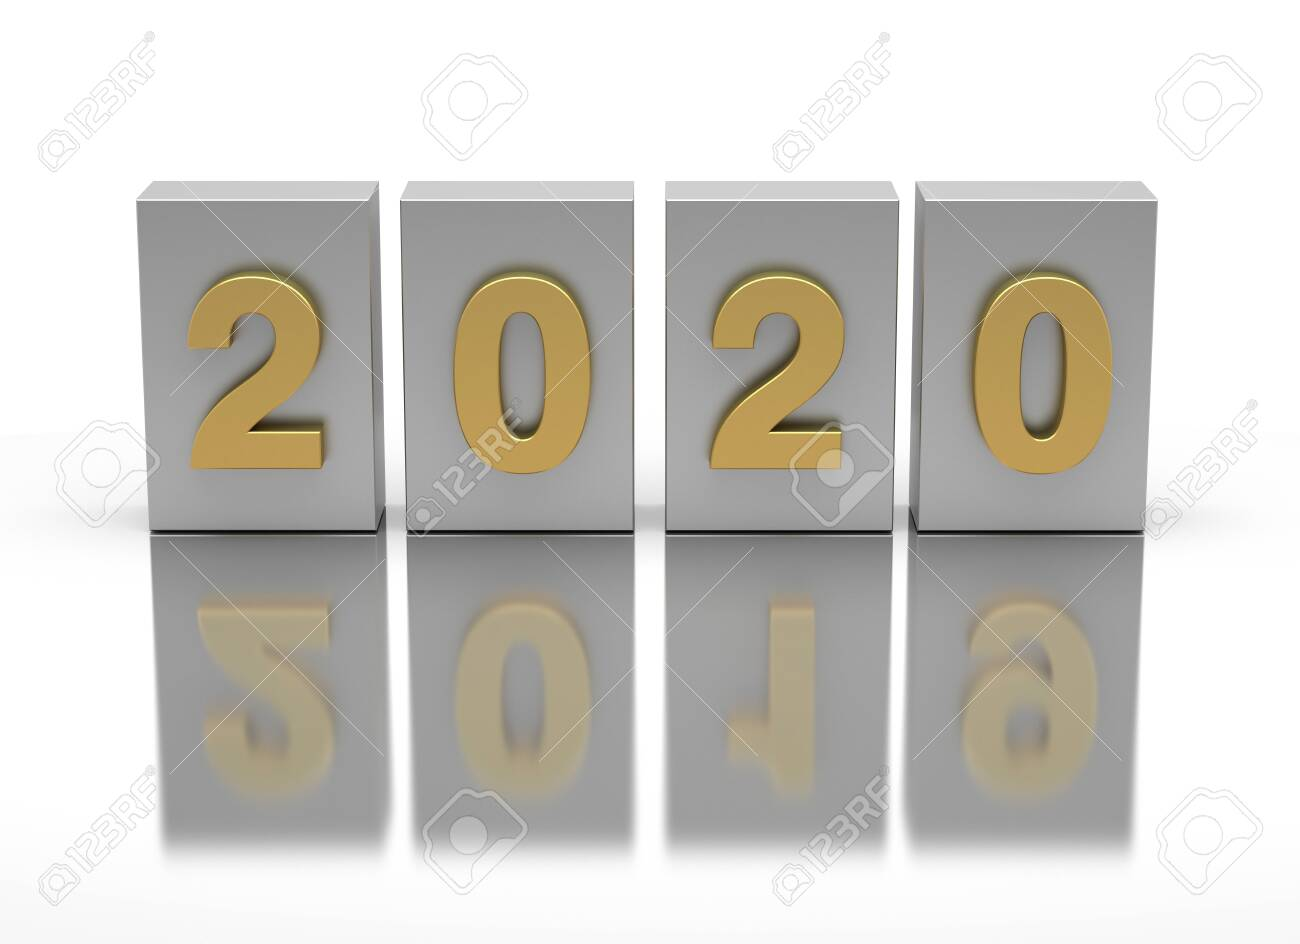 New Year 2020 and old 2019 on white background - 142619532